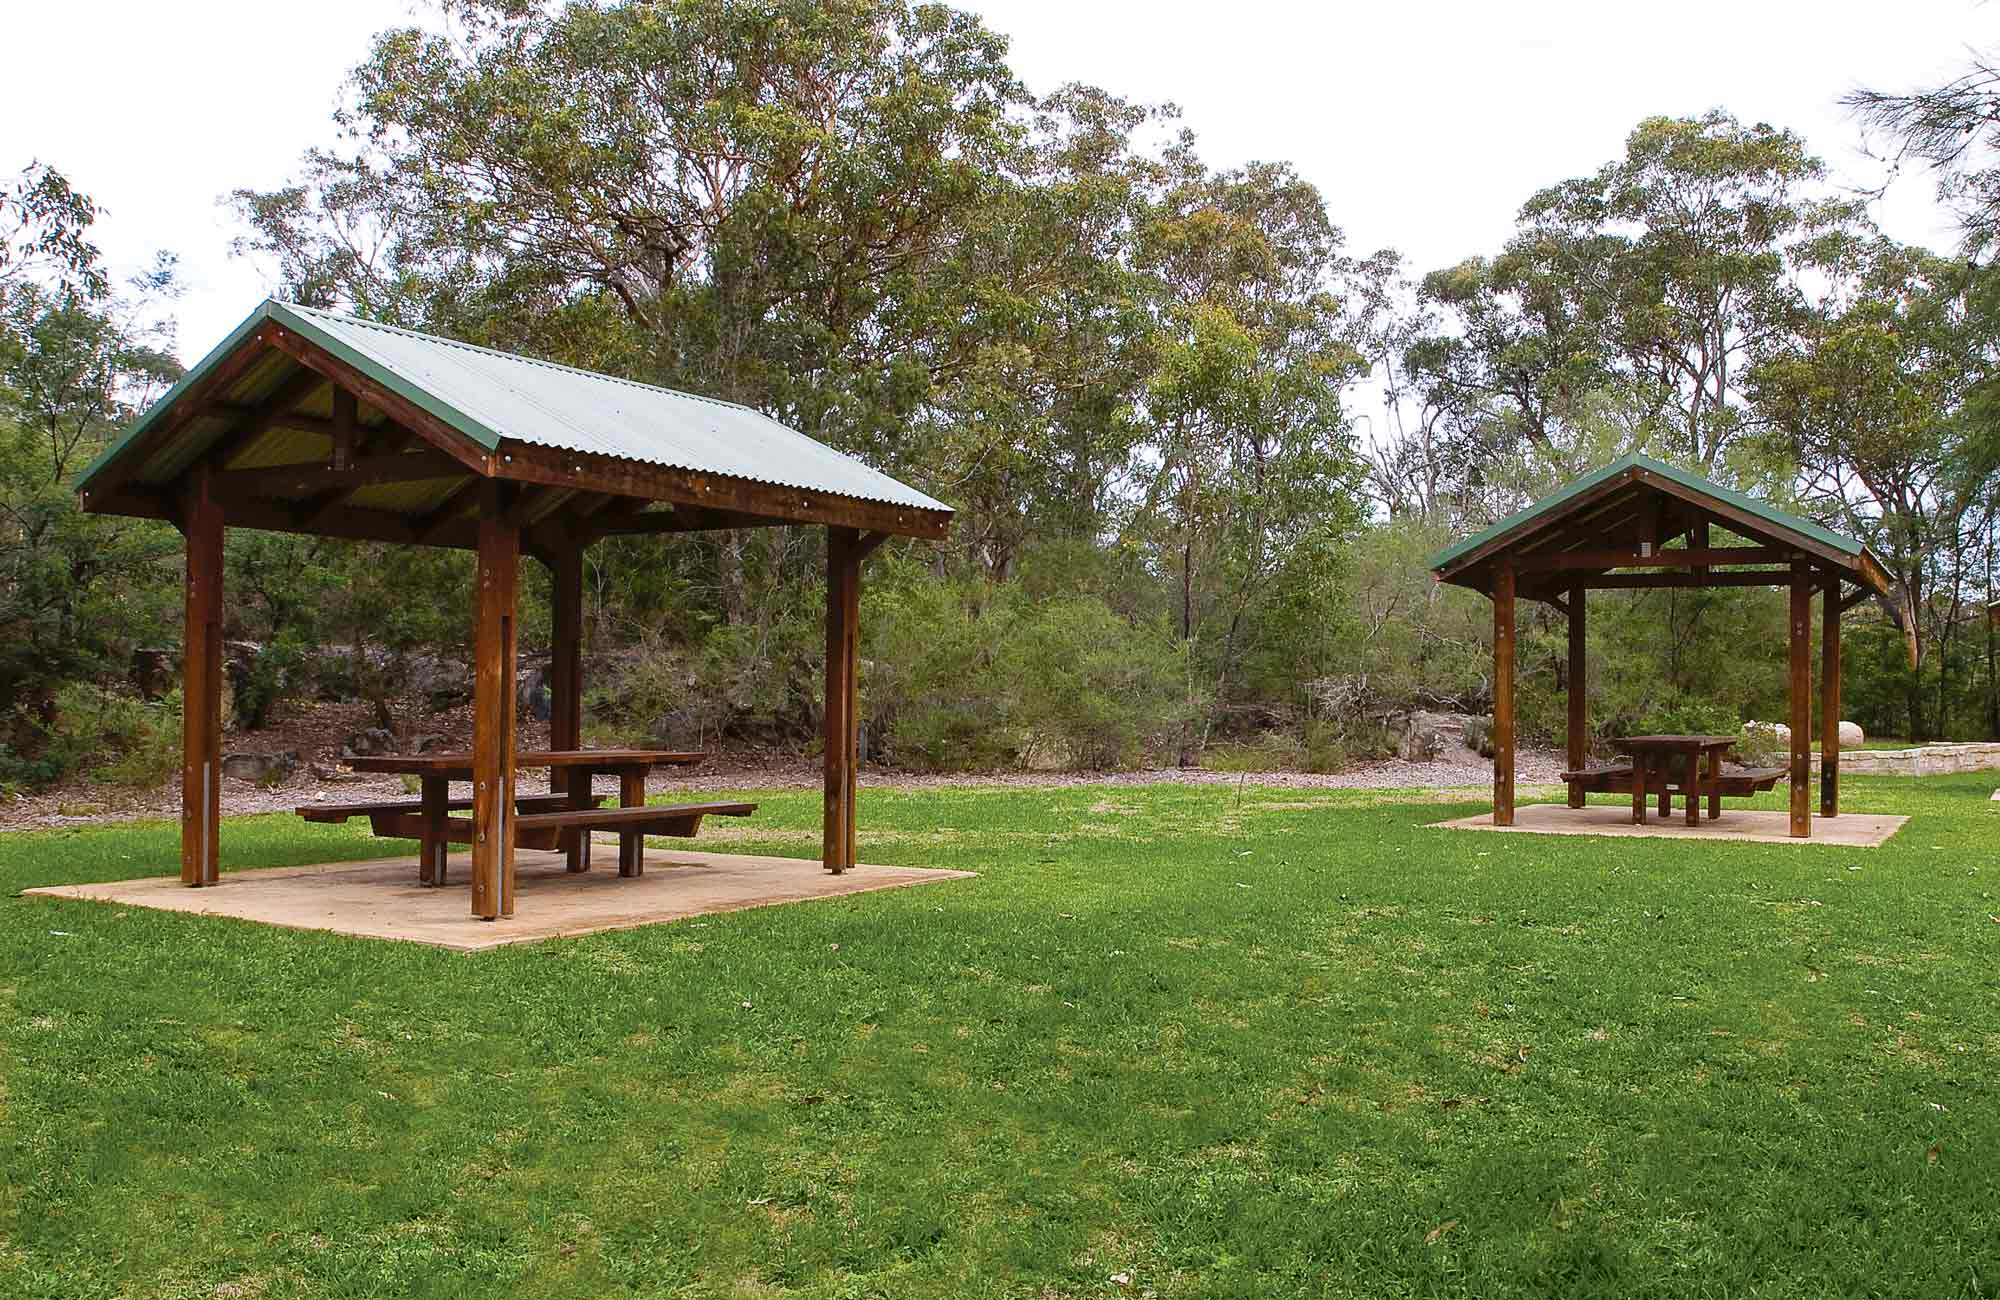 Bomaderry Creek picnic tables, Bomaderry Creek Regional Park